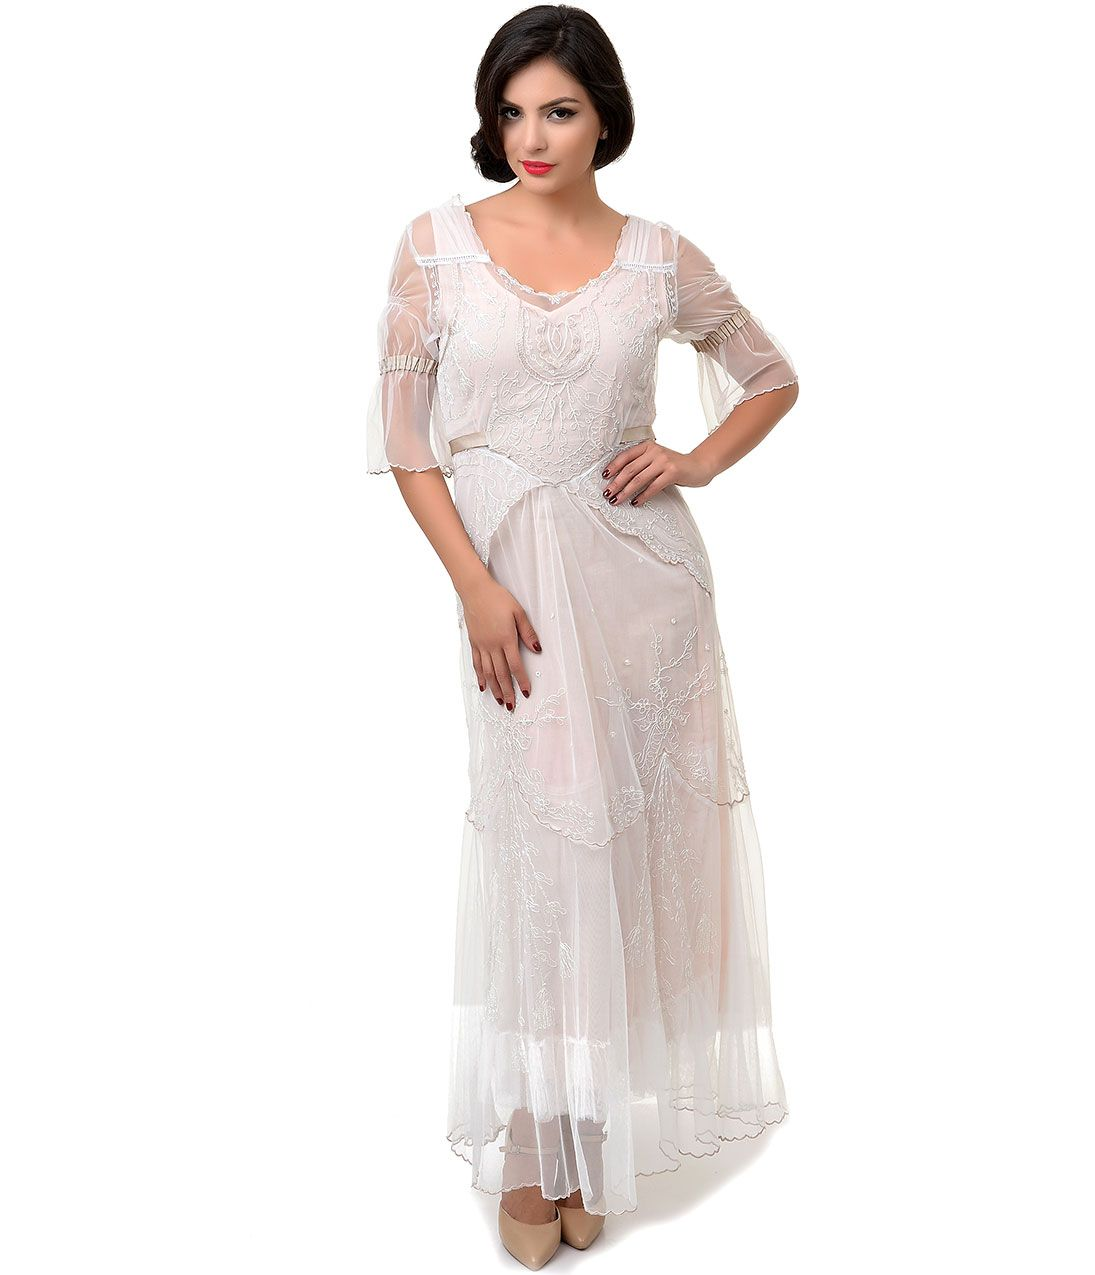 Victorian Edwardian Style Wedding Dresses, Shoes, Accessories